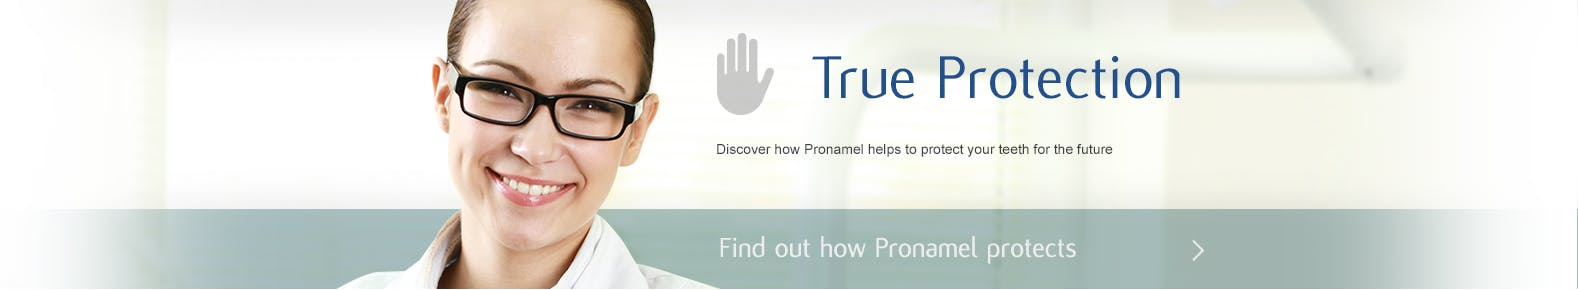 Find out how Pronamel protects